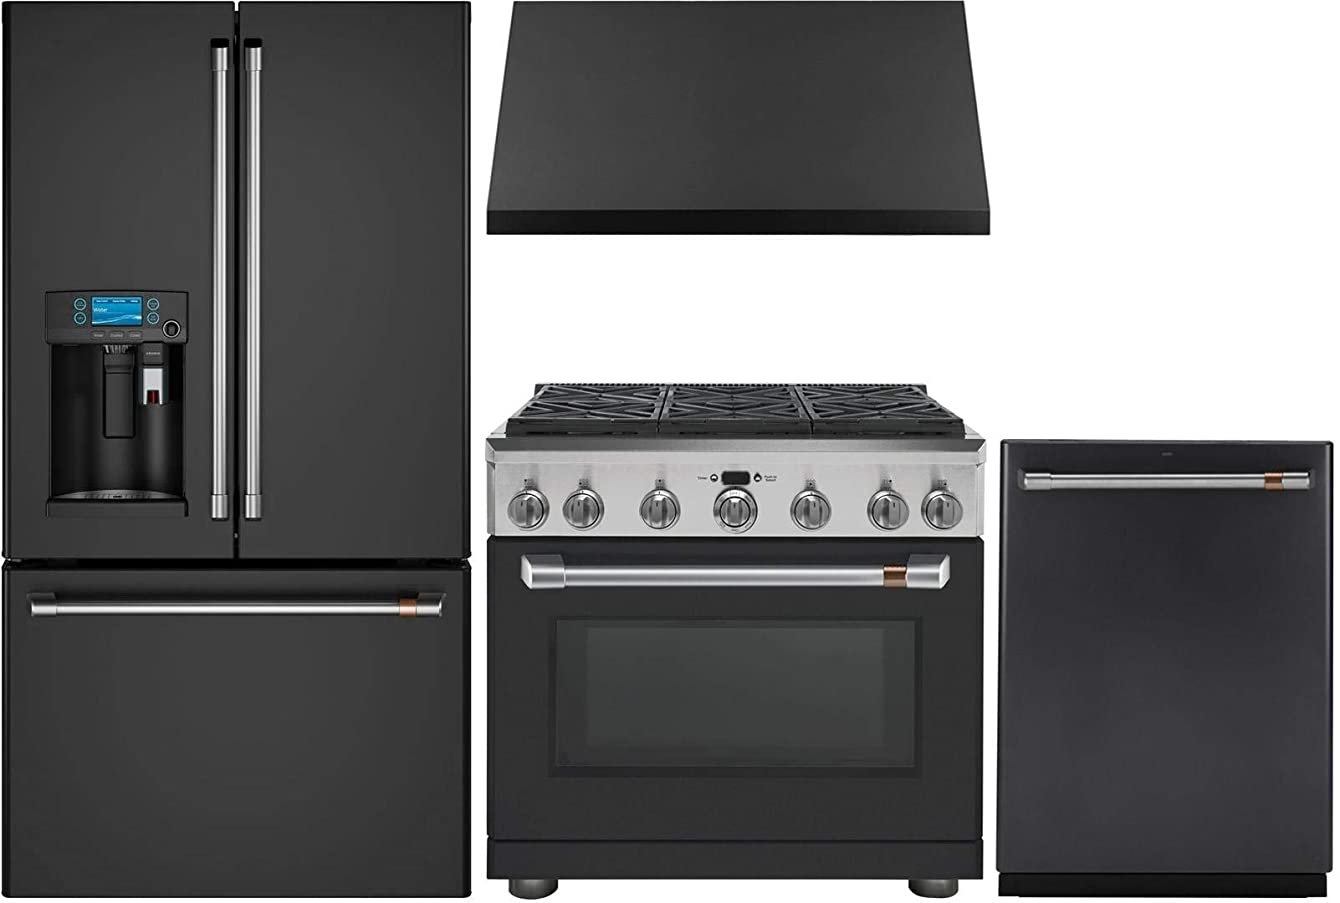 GE Cafe 4 Piece Kitchen Package with CFE28UP3MD1 36